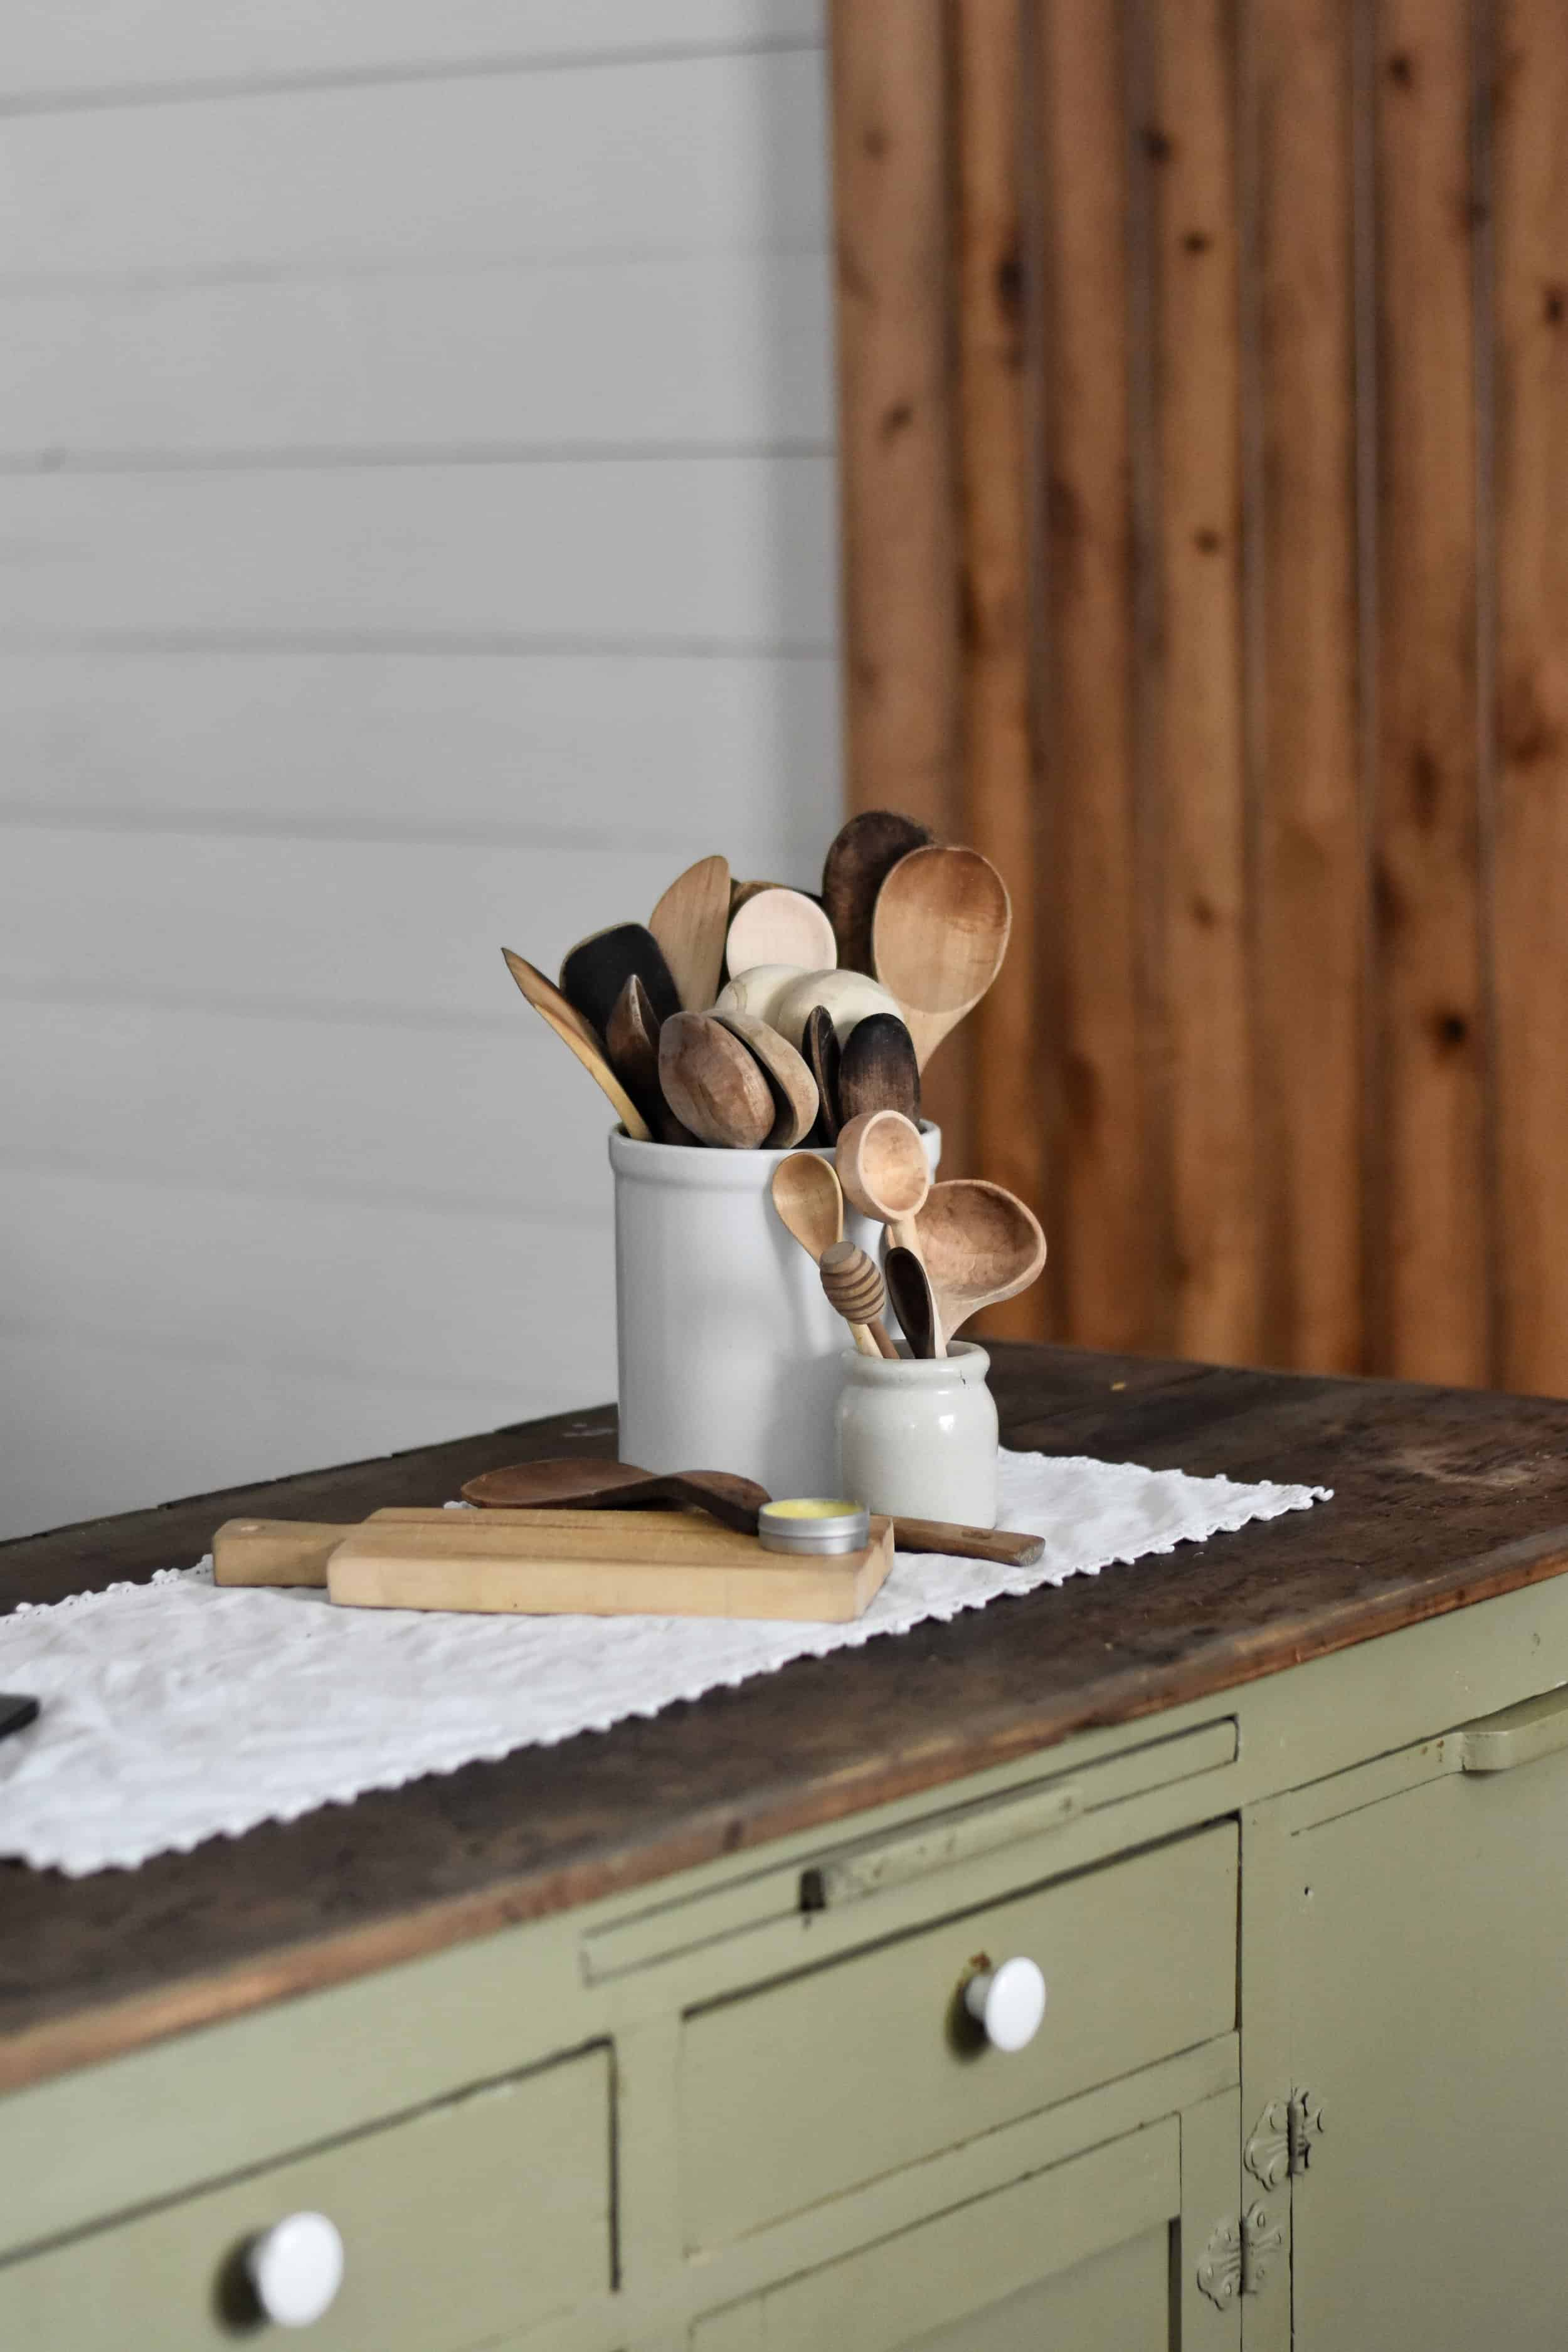 Caring for Wooden Utensils